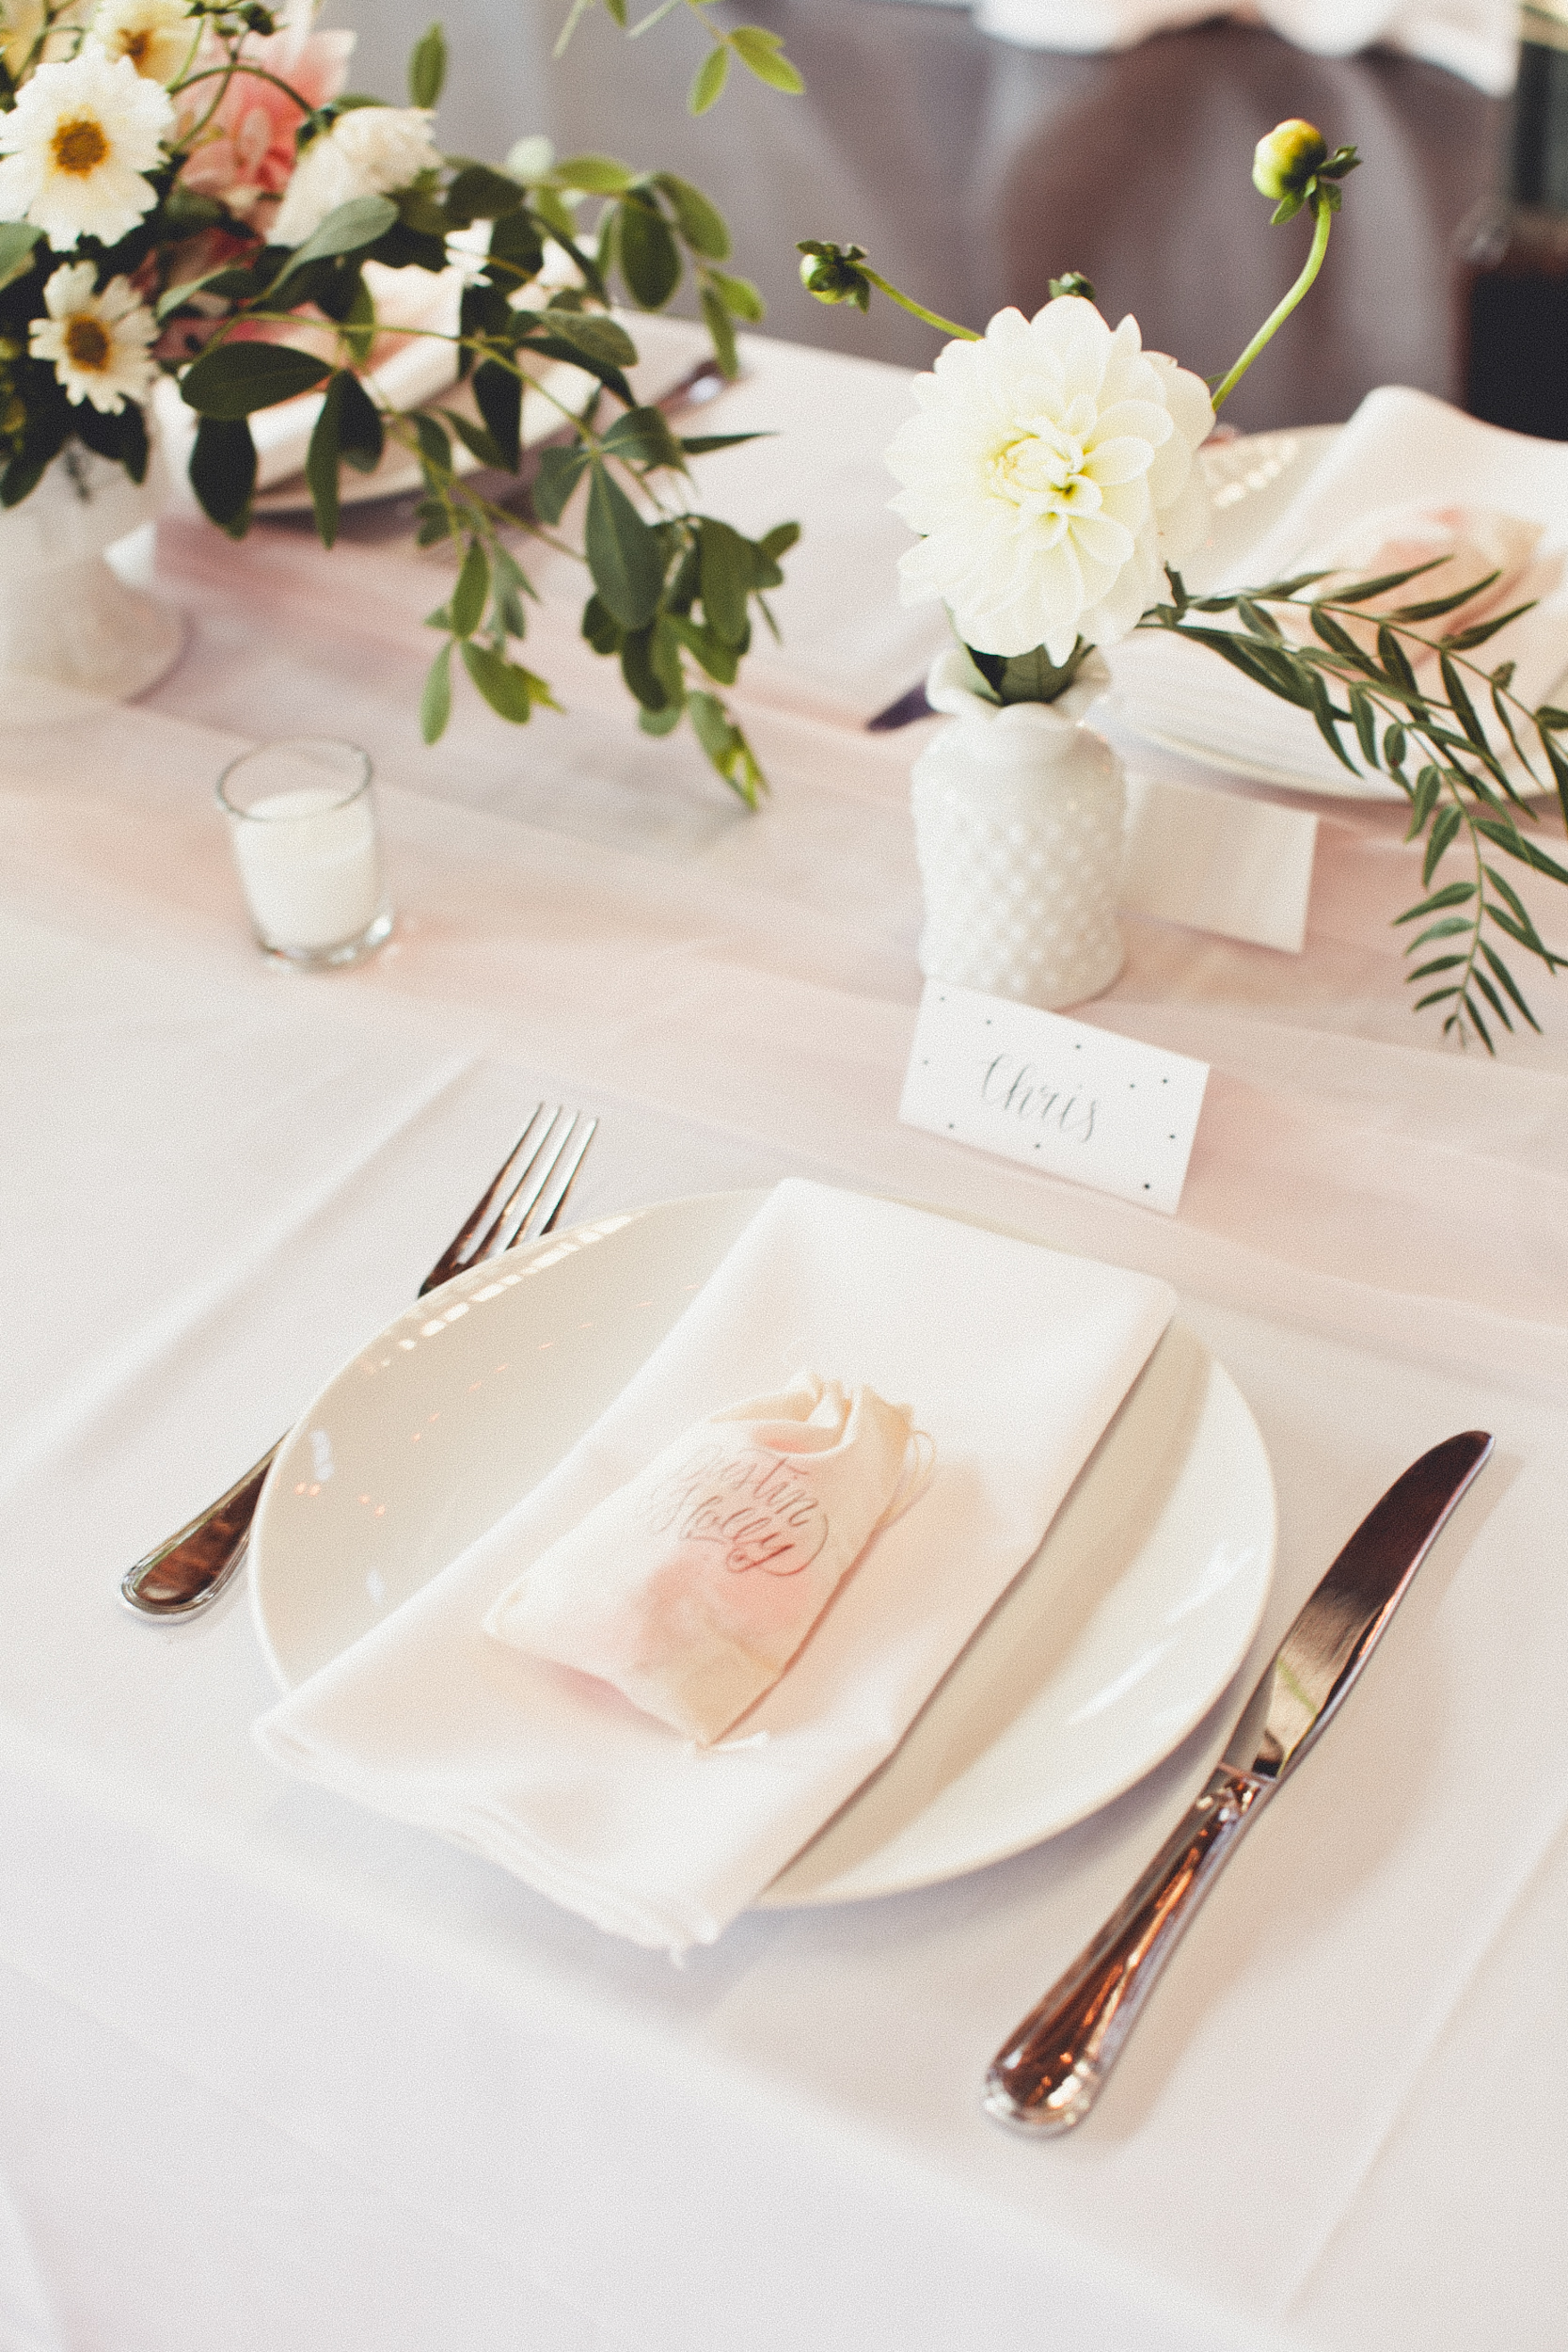 Wedding reception place setting with DIY centerpieces | Golden Gardens Bathouse Wedding | Perfectly Posh Events, Seattle Wedding Planner | Andria Linquist Photography | Holly + Dustin Wedding // © Andria Lindquist 2014